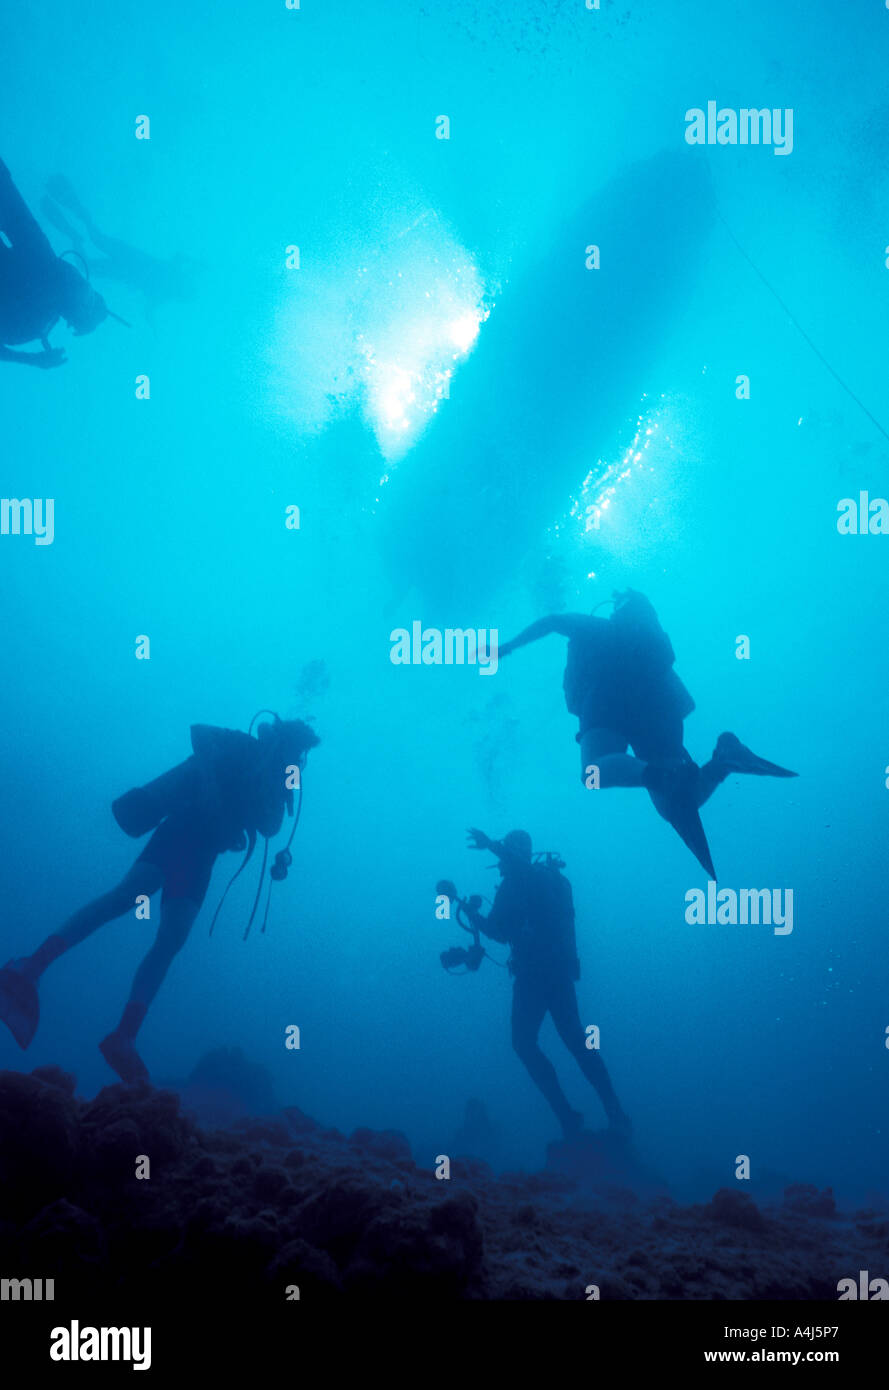 Underwater Scuba divers silhouettes swim to surface with dive boat and bright sun in background - Stock Image